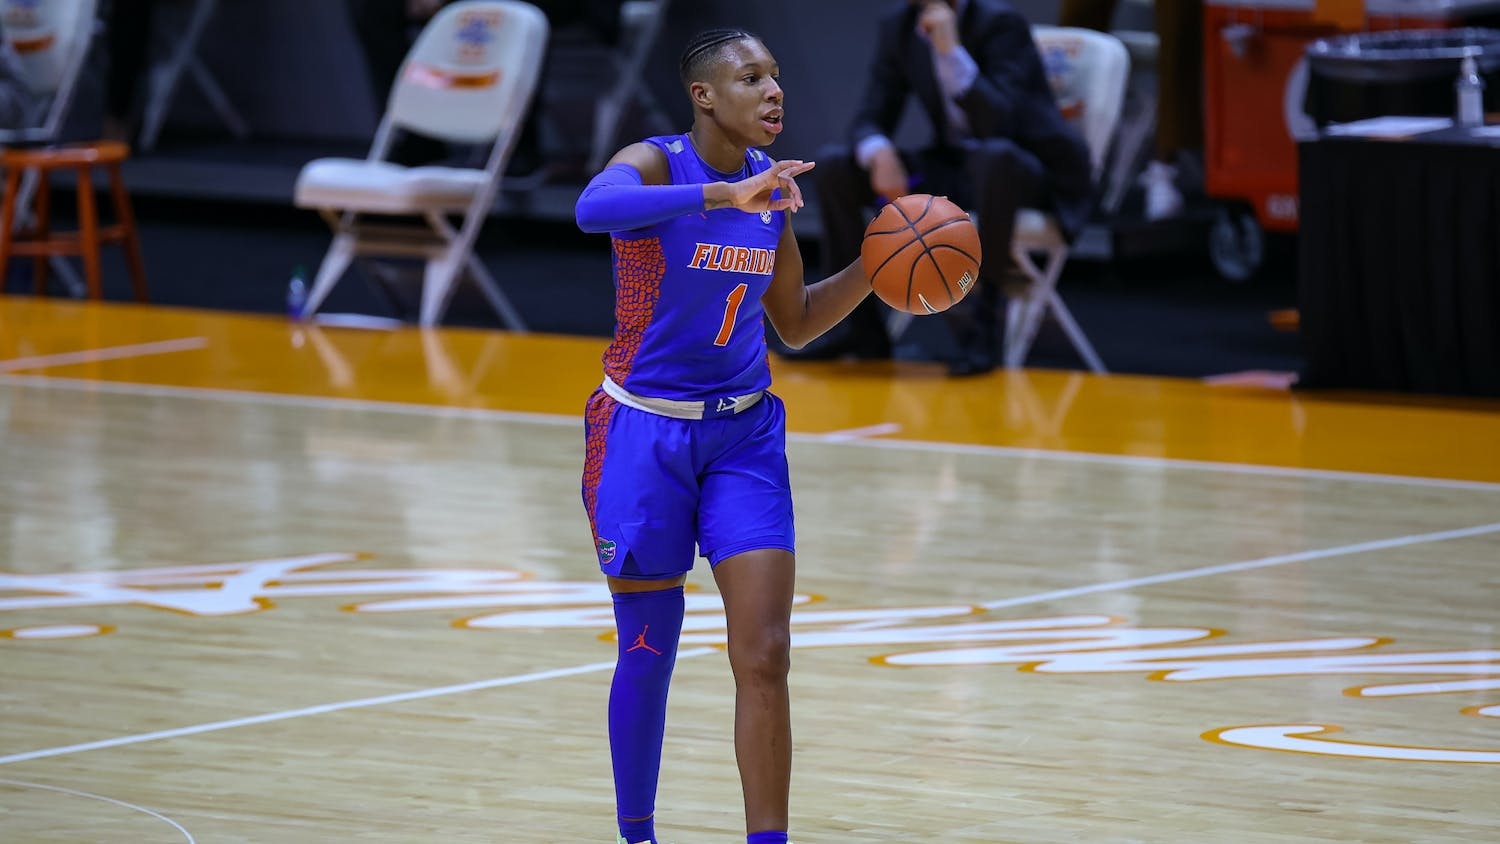 Kiara Smith scored 23 points Sunday. Photo courtesy of the SEC Media Portal.